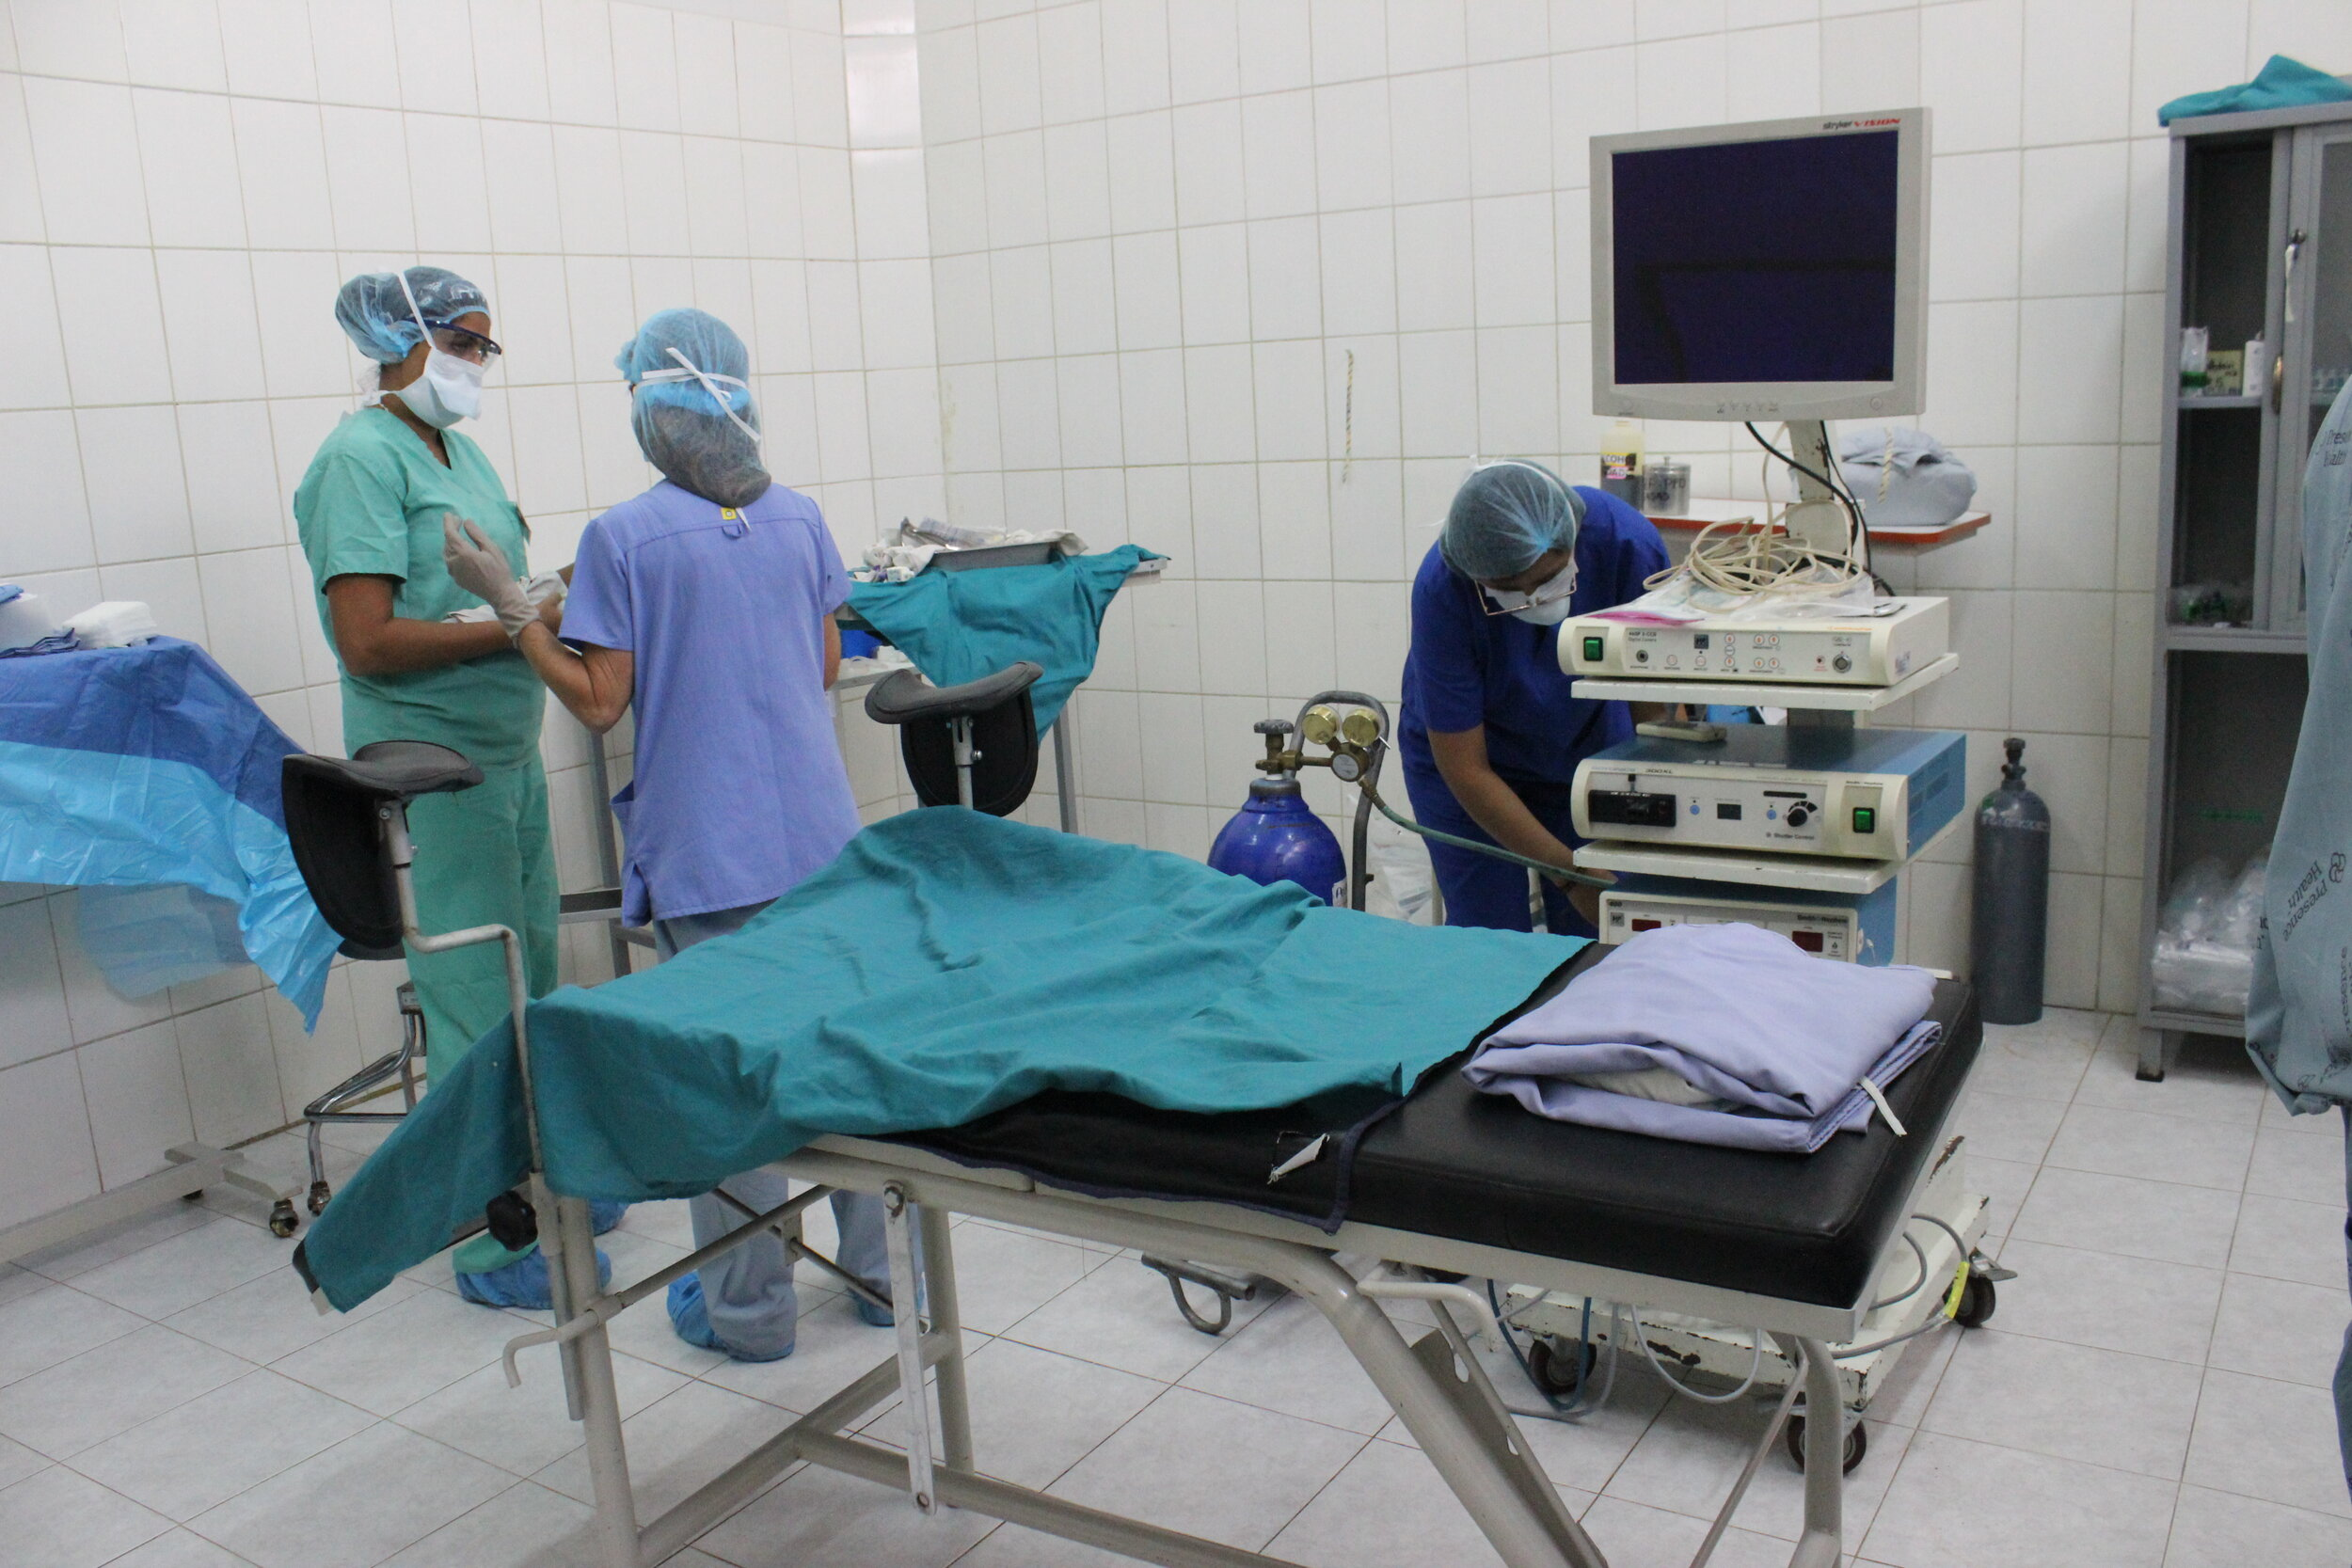 consulting with her fellow missioner, Surgical Nurse Jen, as they prepare the OR